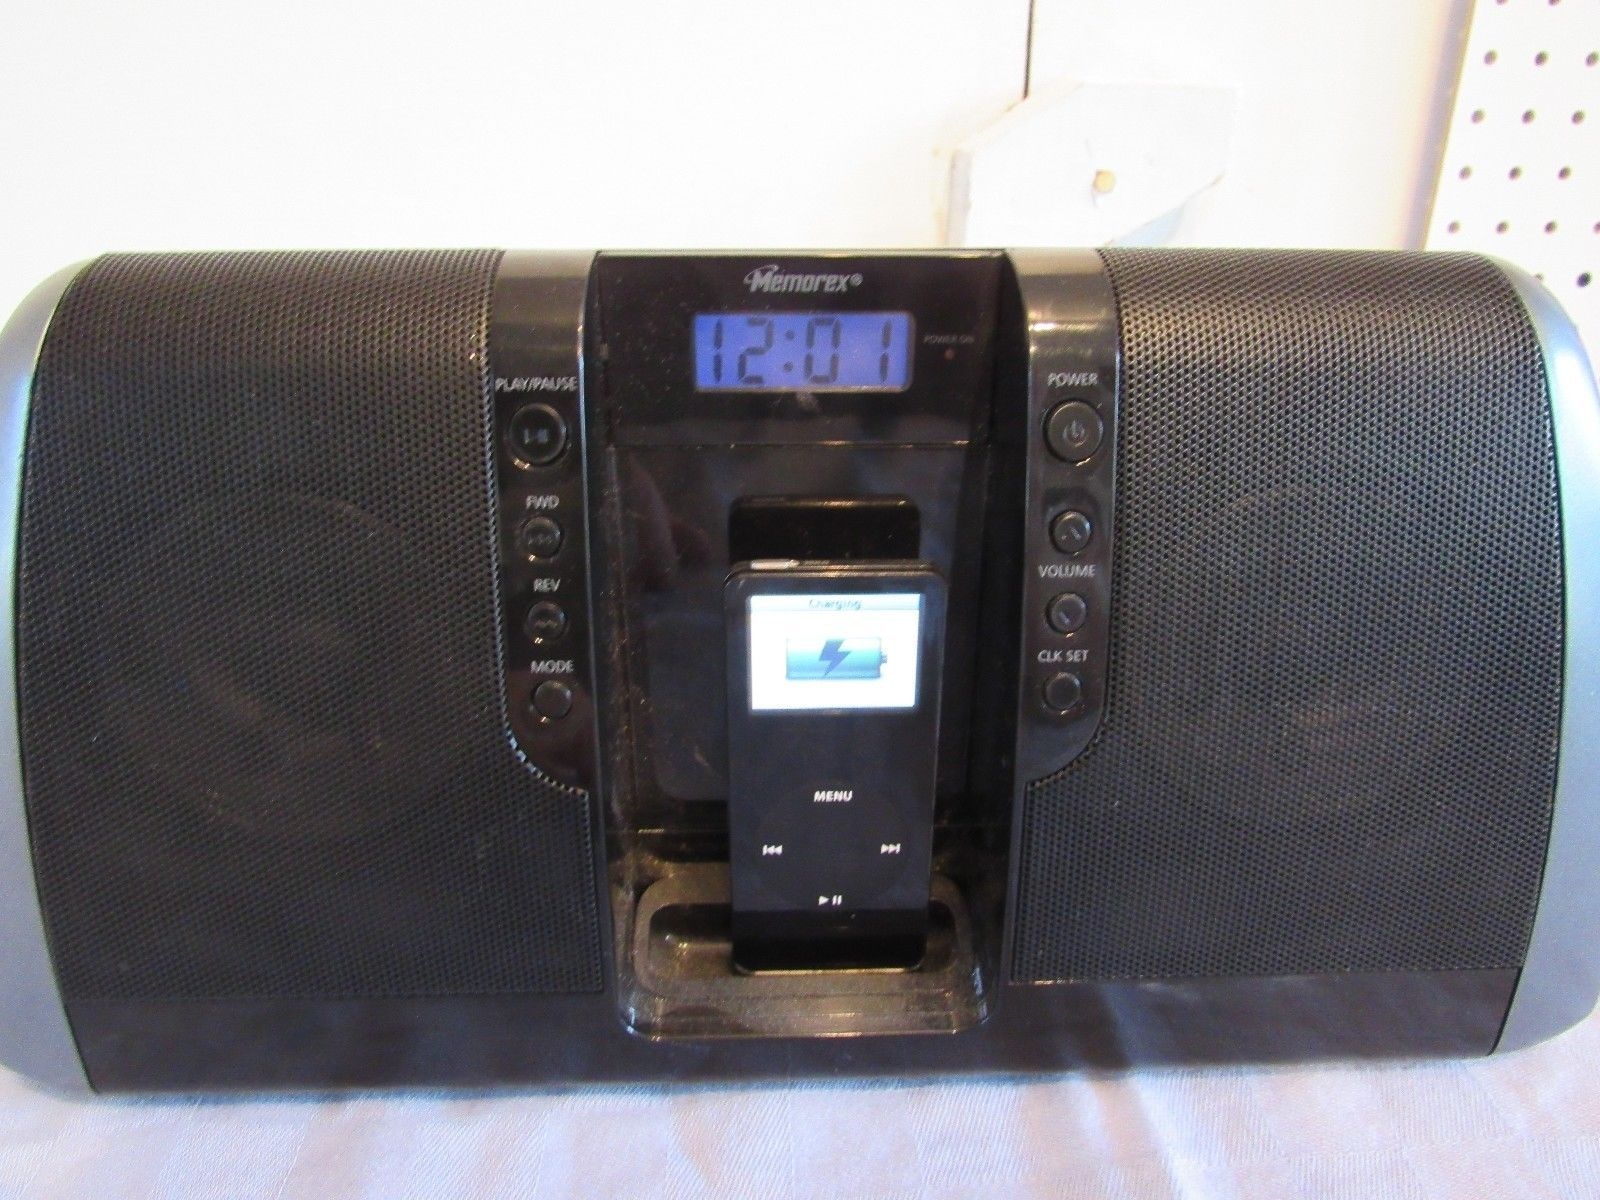 Apple iPod Black Mi3020 Docking Station Memorex